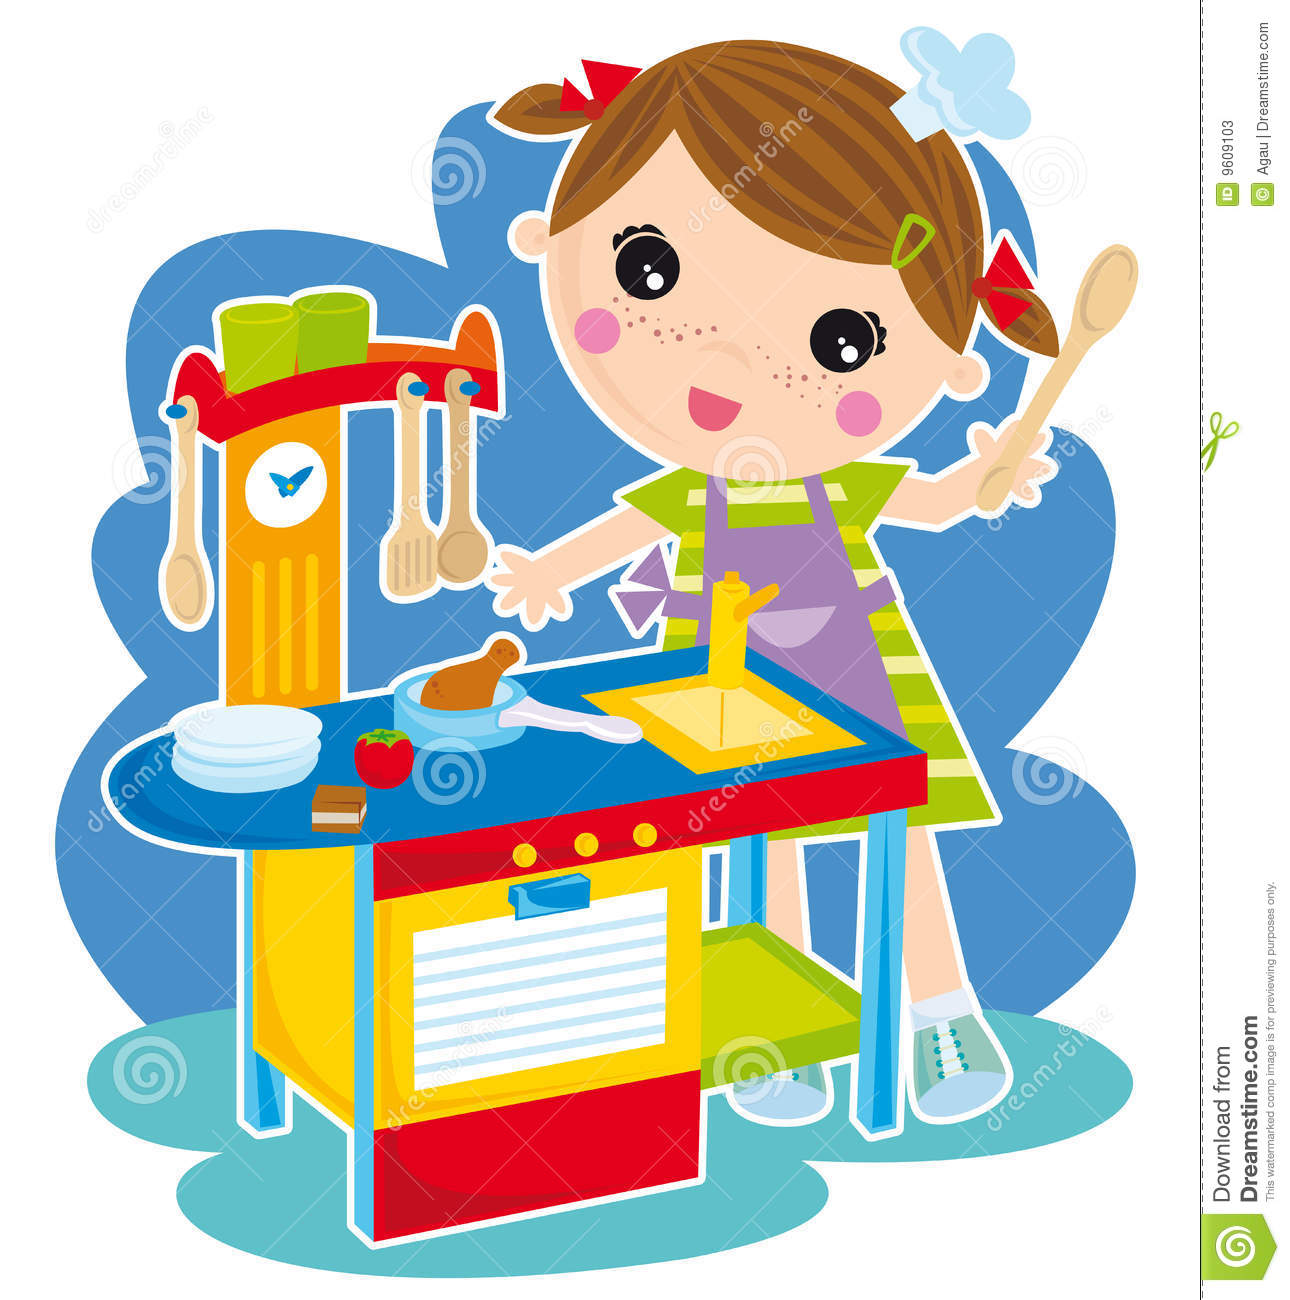 Toy stove clipart clip free Toy Kitchen Clipart - Free Clipart clip free